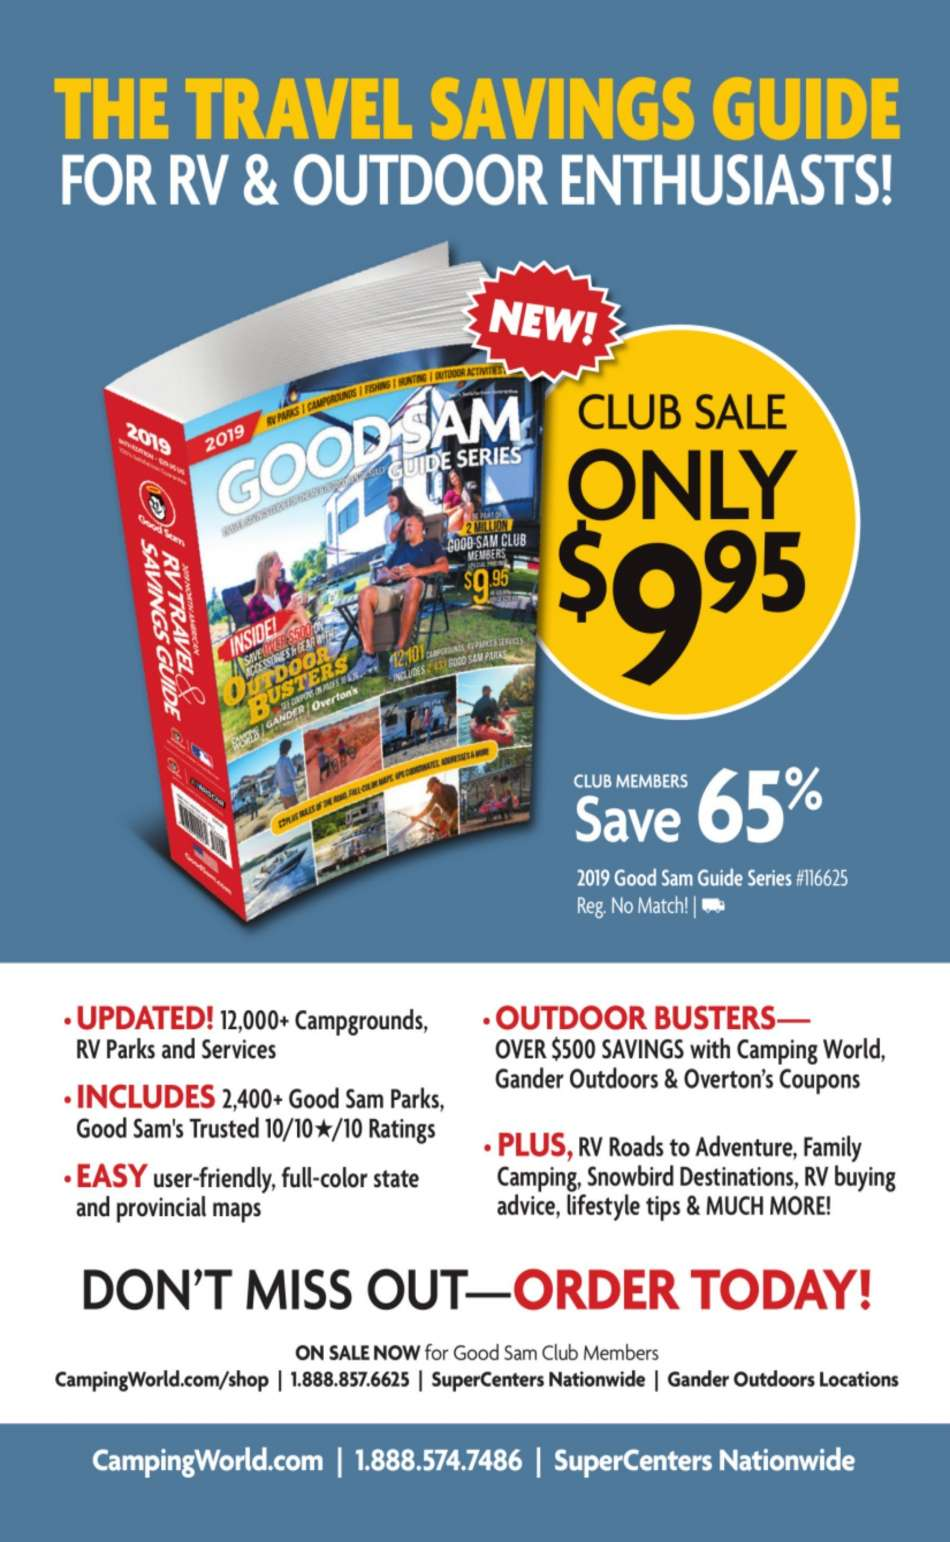 Camping World flyer 01.28.2019 - 02.24.2019 | Weekly-ads.us on rockingham map, bloomsbury map, will map, beacon hill map, noah map, jake map, capitol hill map, christopher map, space needle map, seattle center map, green lake map, vi map, nick map, scott map, paris map, olympic sculpture park map, dan map, thomas map, pike place market map, pacific science center map,